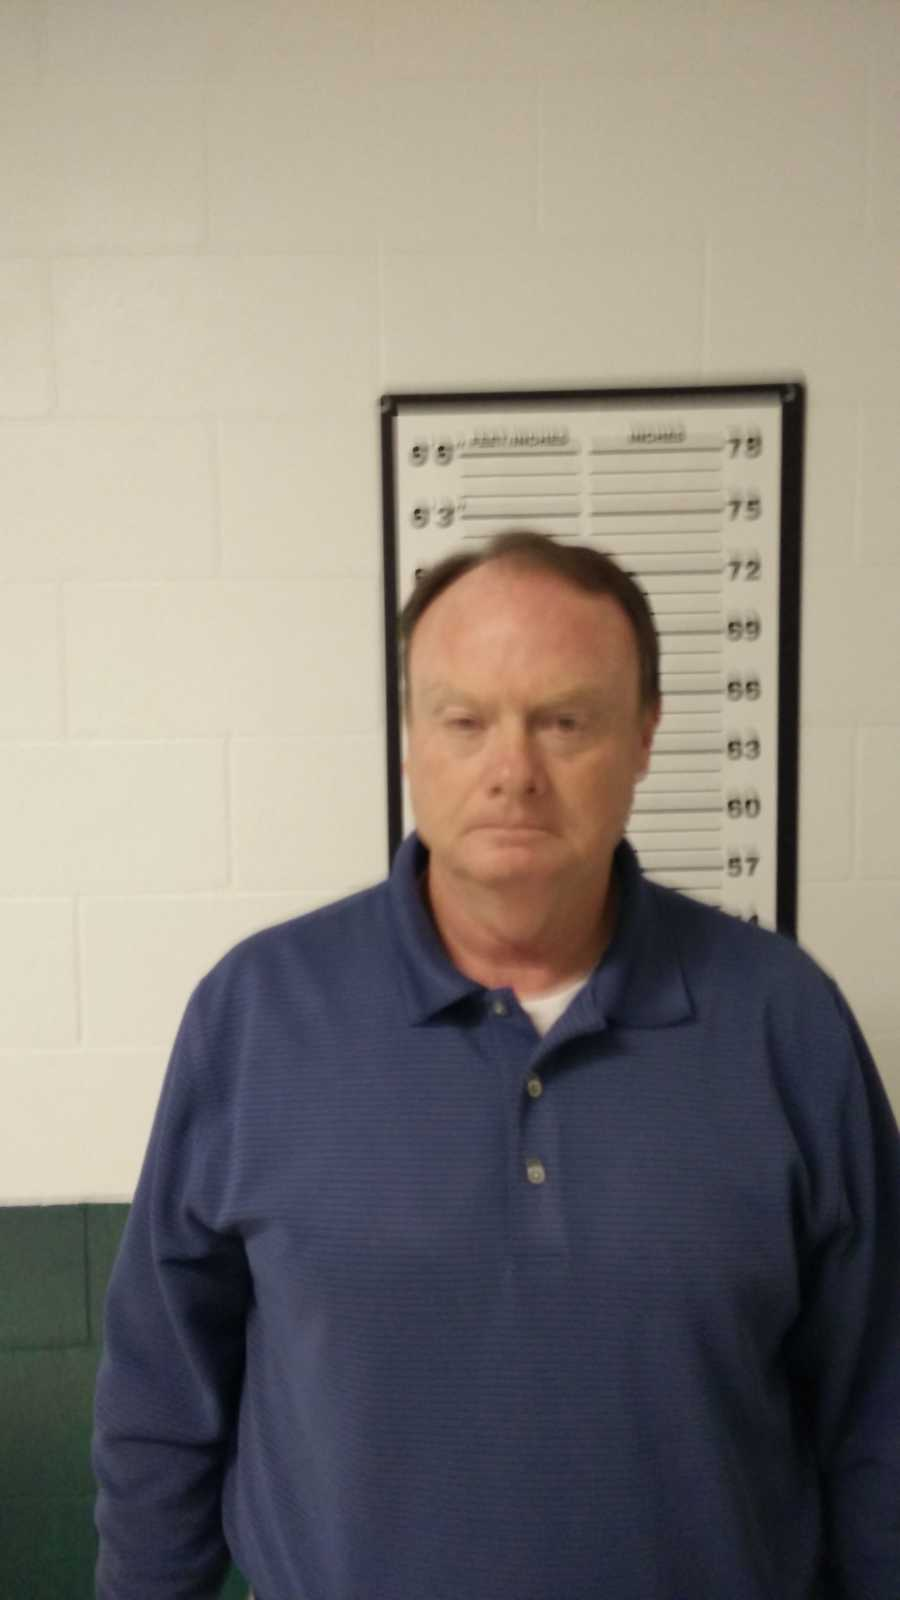 Paul Rhodes, 55, of Corinth, is charged with 13 criminal counts, including conspiracy to commit embezzlement, making false representations to defraud the government and hindering prosecution. Rhodes is purchasing clerk for Alcorn County.